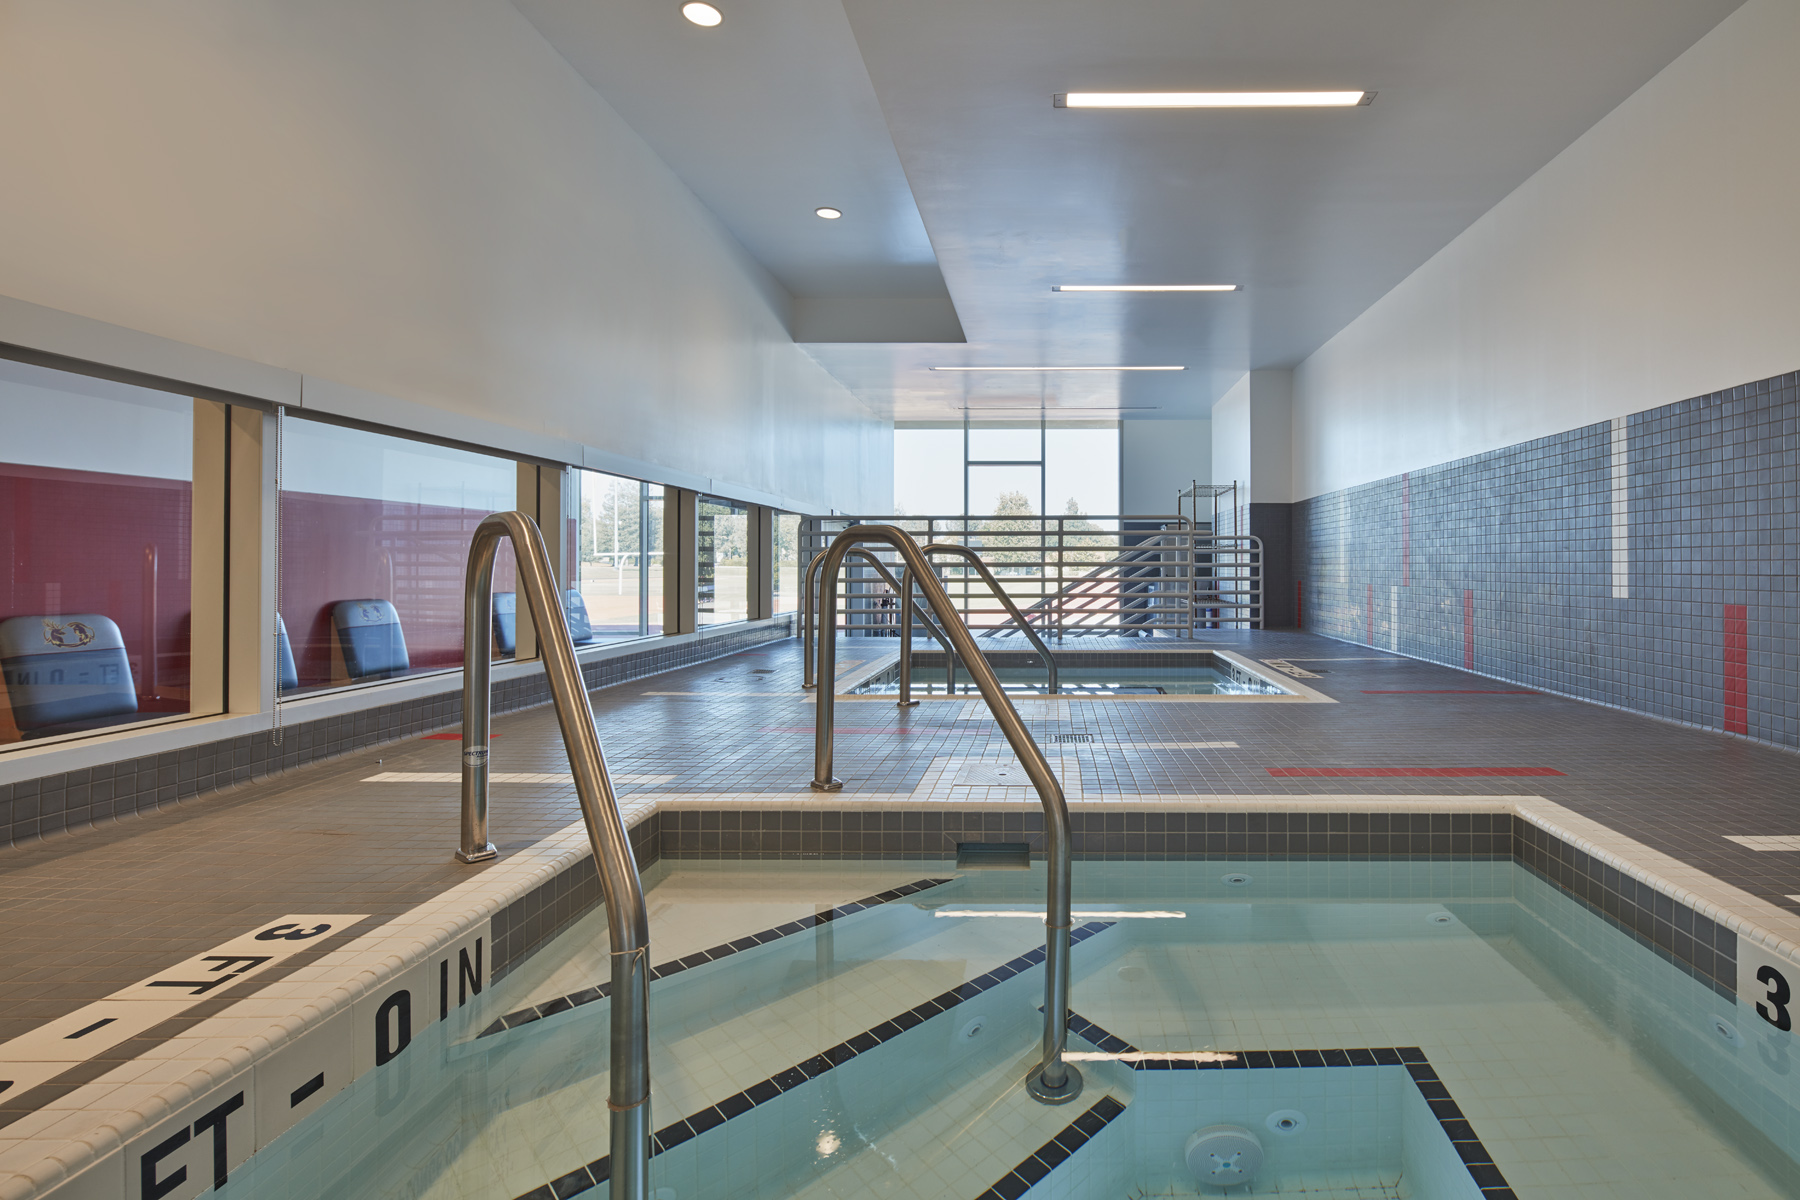 Hydrotherapy tubs in sports medicine center